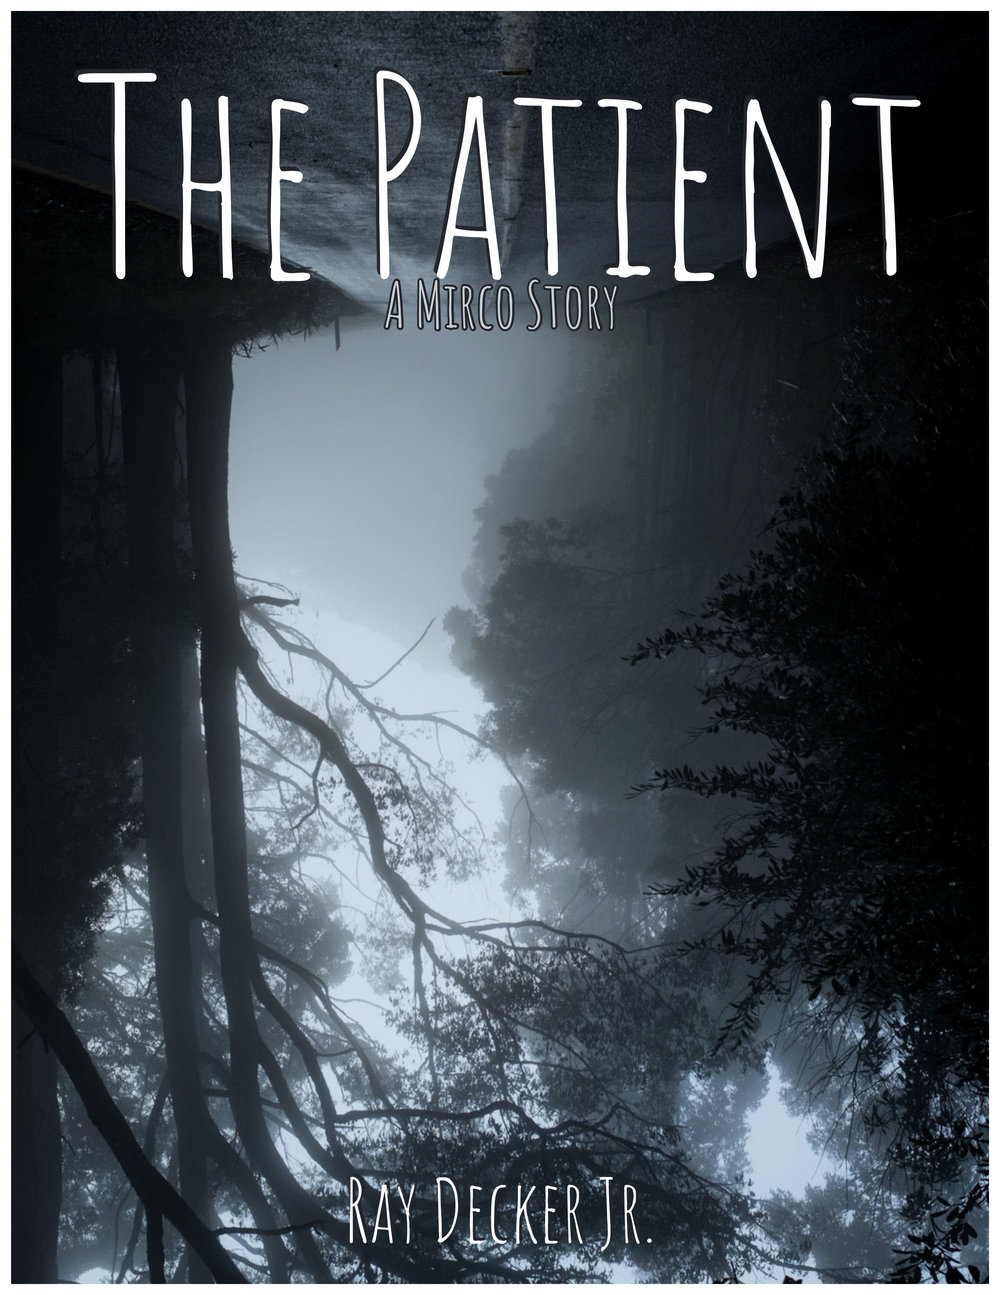 The Patient - A nightmarish exchange between a Doctor and a Patient takes place.Q: What is a Micro-Story?A: It's a super short story typically told in 1,000 words or less.Q: How Long of a Read is A Micro-Story?A: Depending on your reading speed, it could take as little as a few minutes.Q: Why should I read Micro-Stories?A: Some people talk about wanting to read more, Micro-Stories are a gateway for those who don't read enough who wish to read more or for those who love reading any and everything.Q: How much does a Micro-Storie cost?A: ALL Micro-Stories published by Ray Decker Jr. are COMPLETELY FREE!